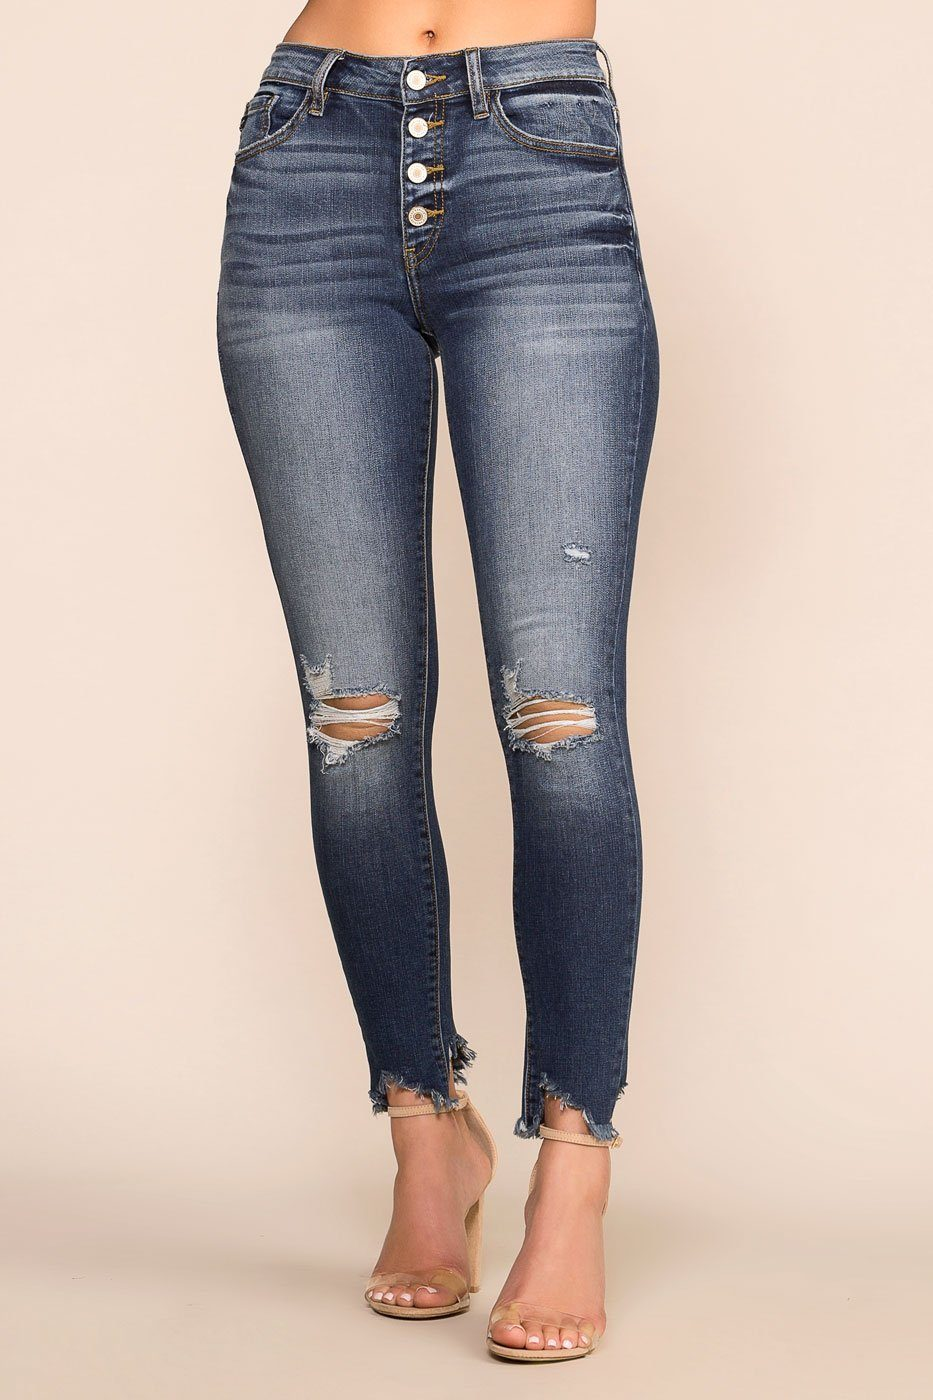 Priceless | Dark Wash | Distressed Jeans | Denim Skinny Jeans | Womens